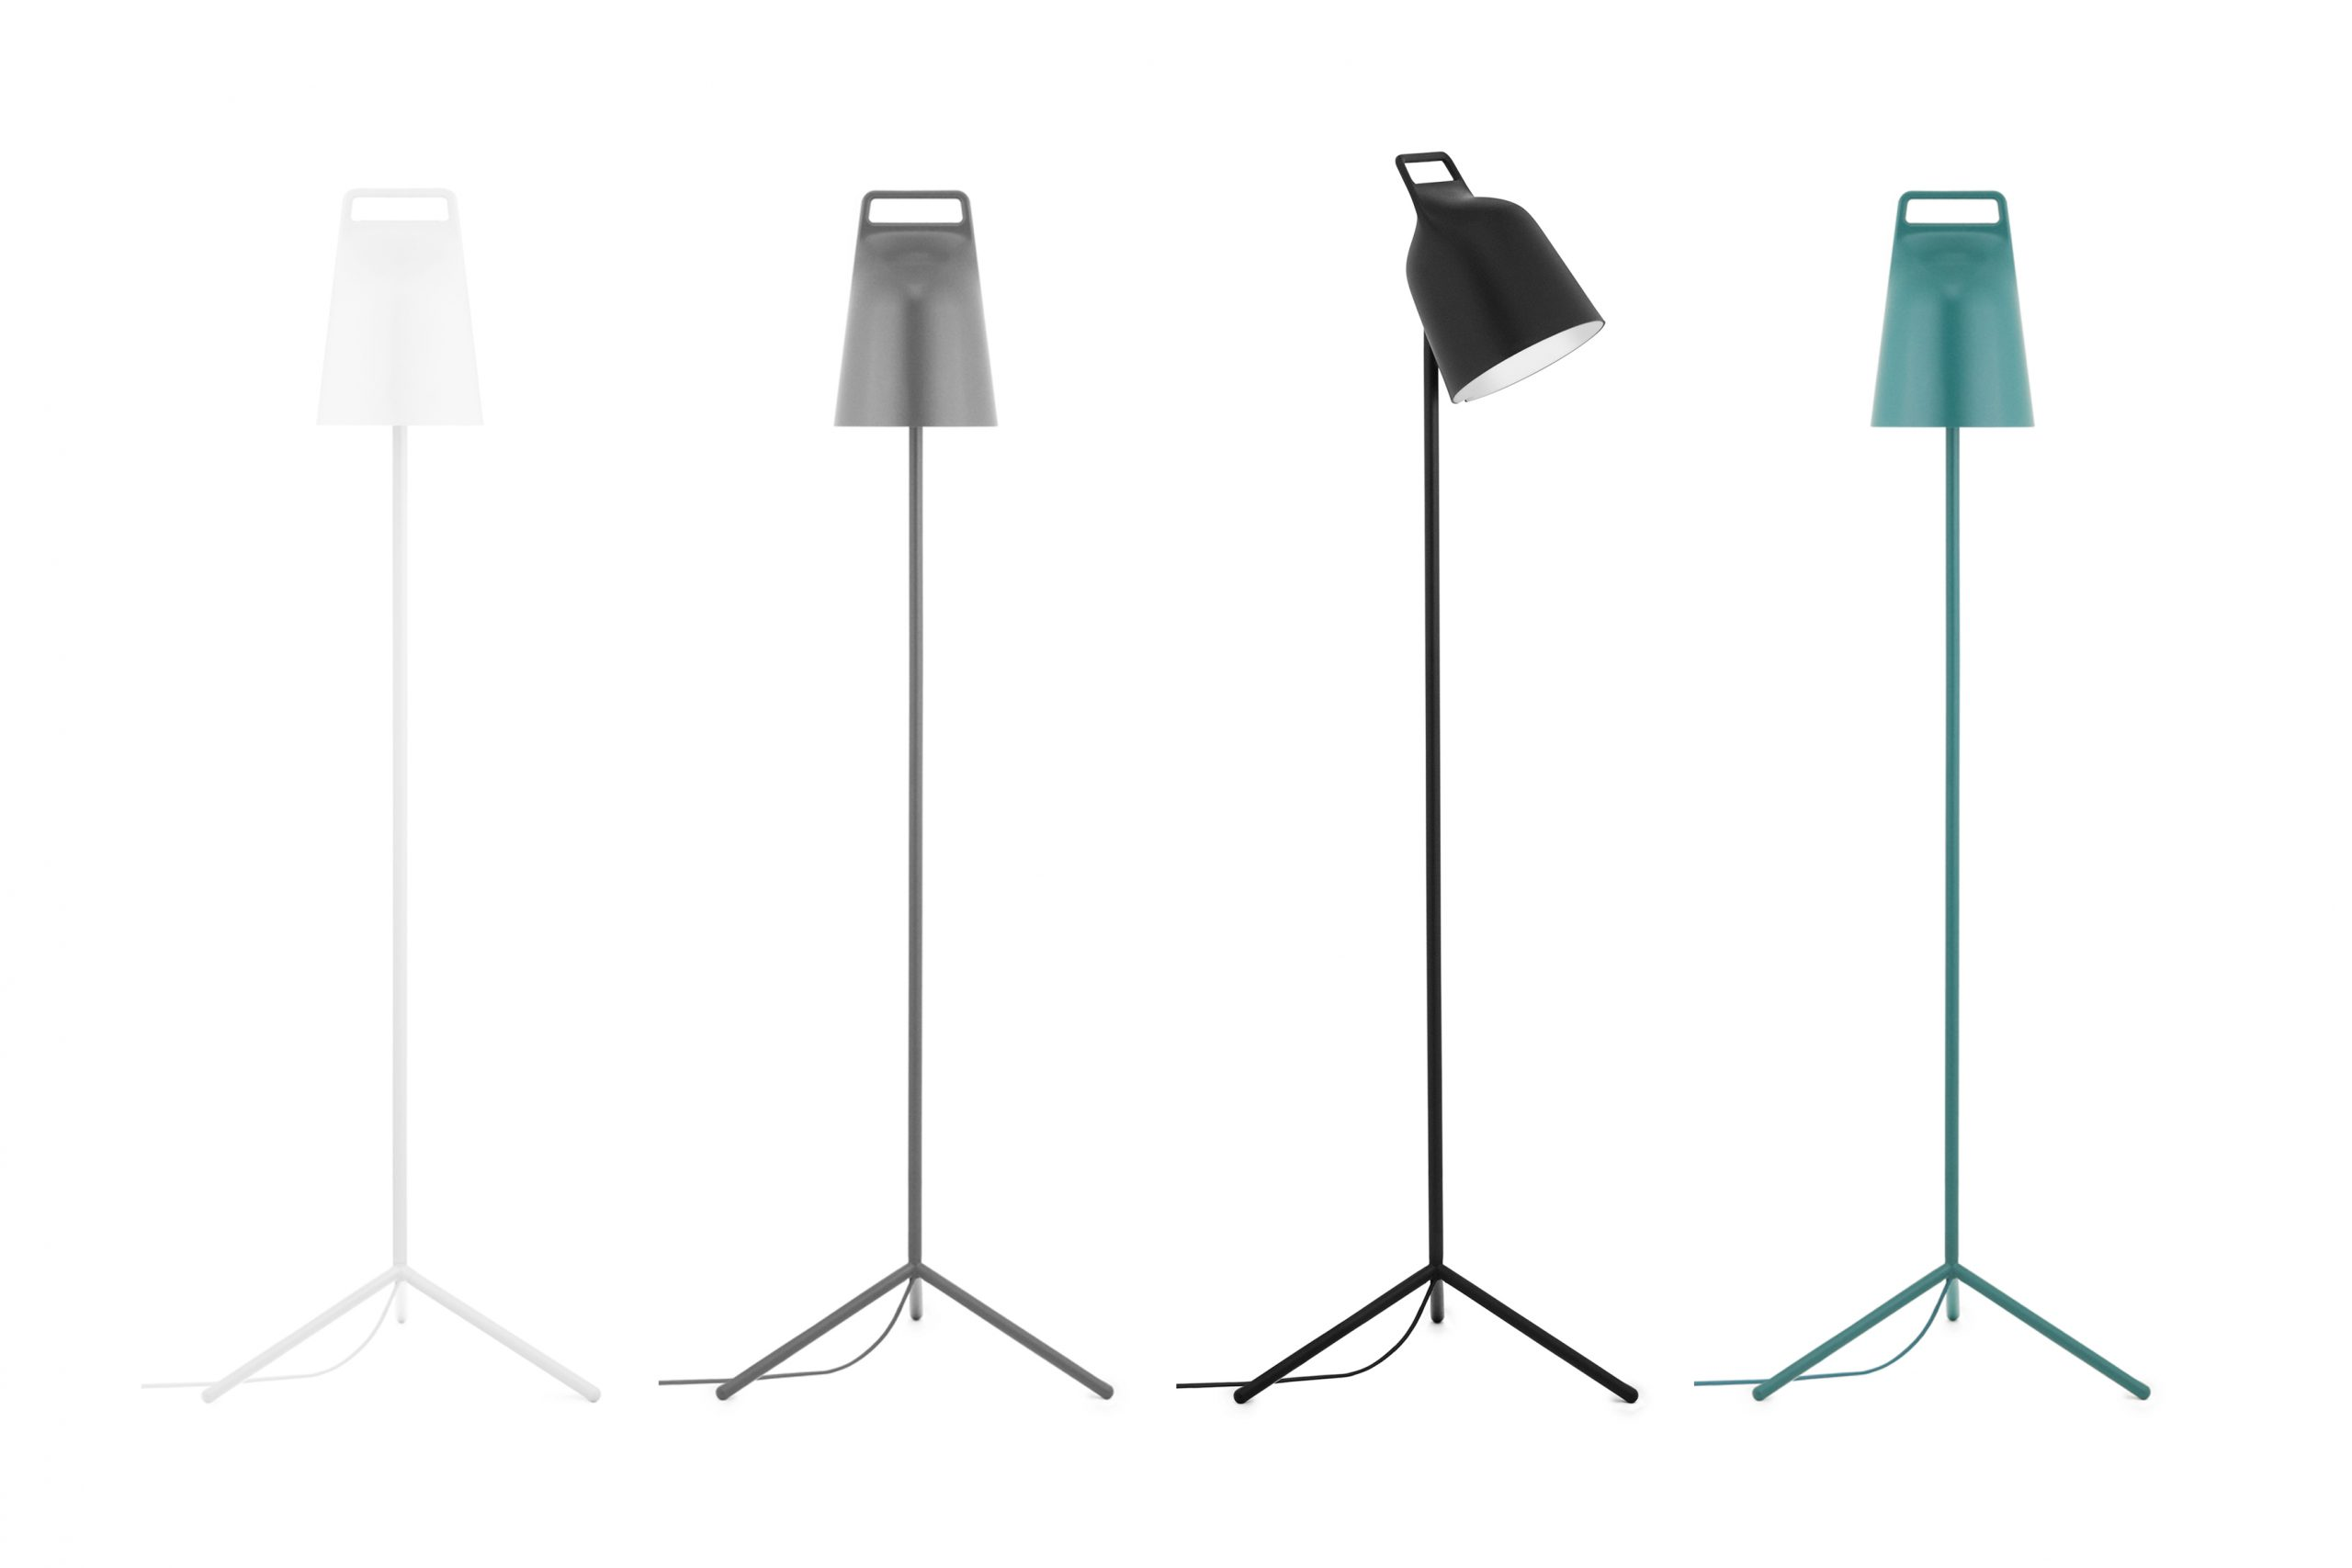 Stage floor lamps by Debiasi Sandri for Normann Copenhagen